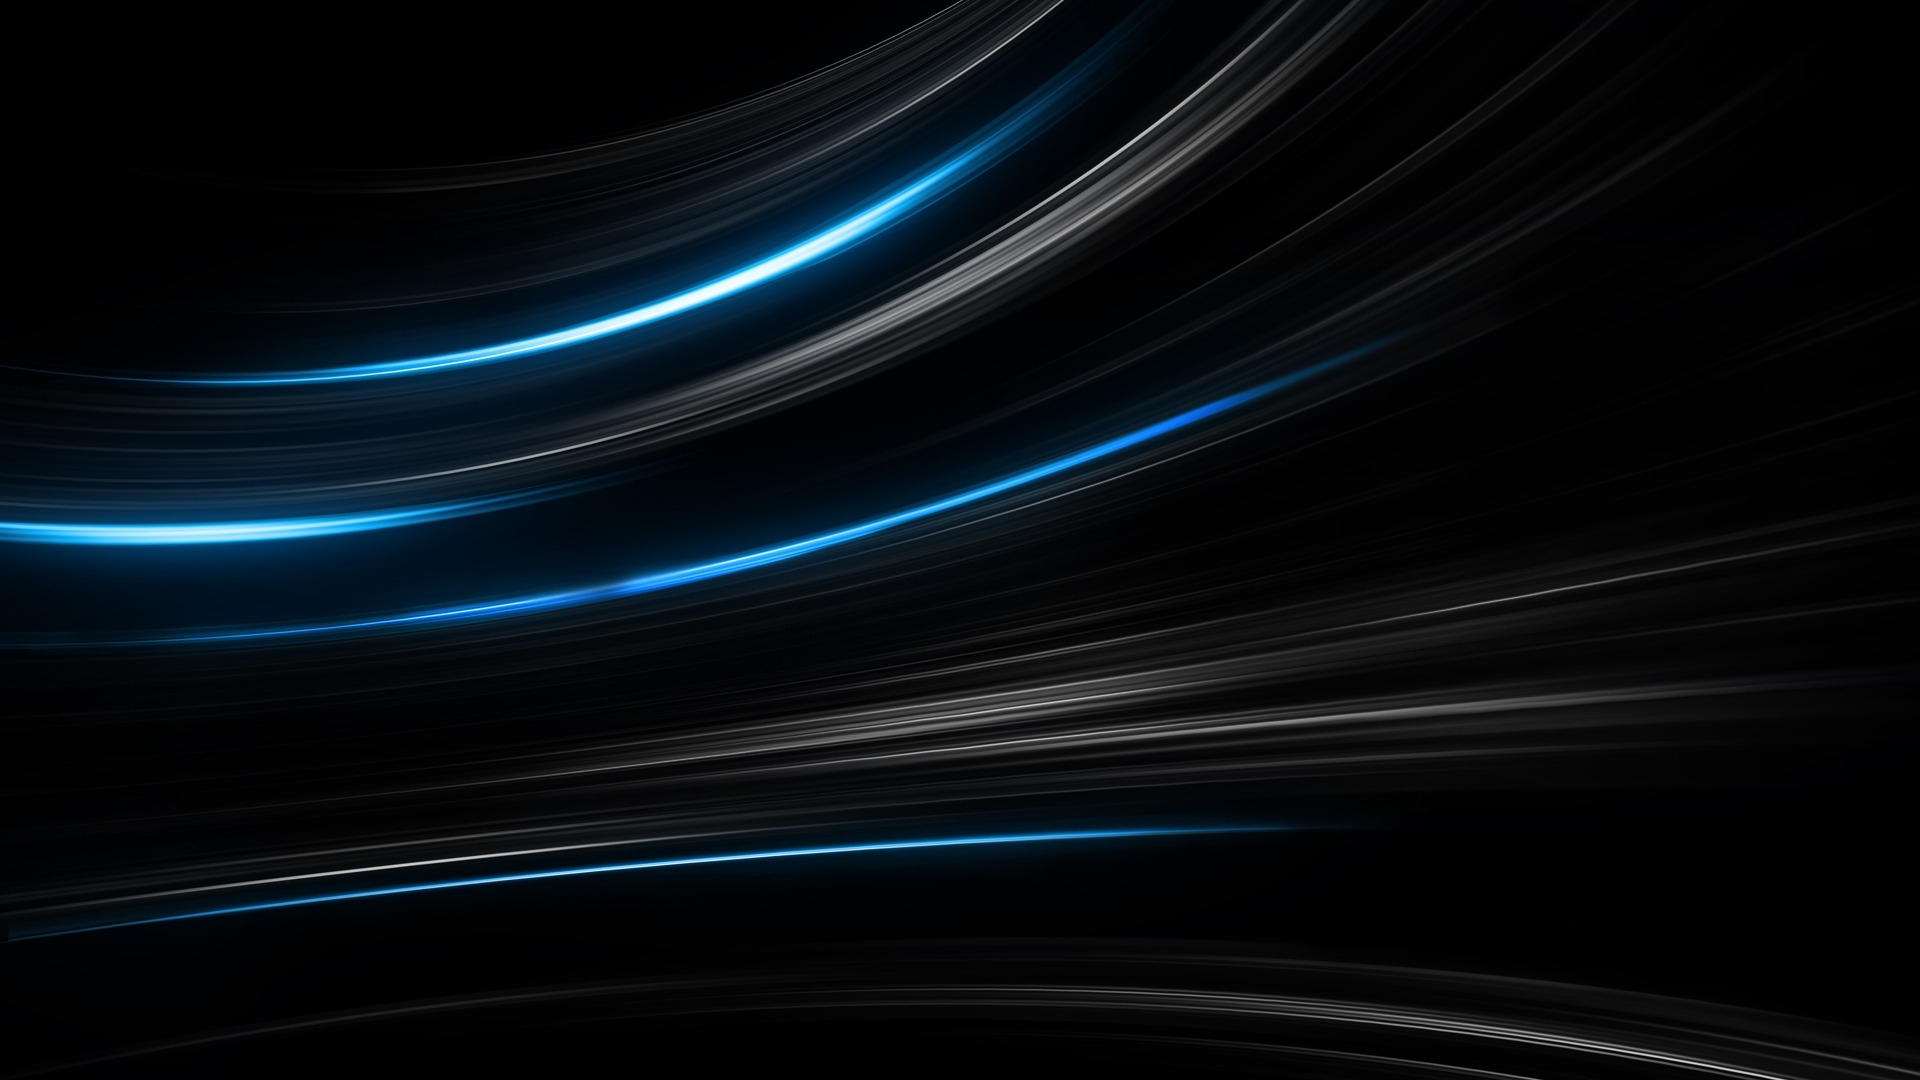 blue and black effect 3d background